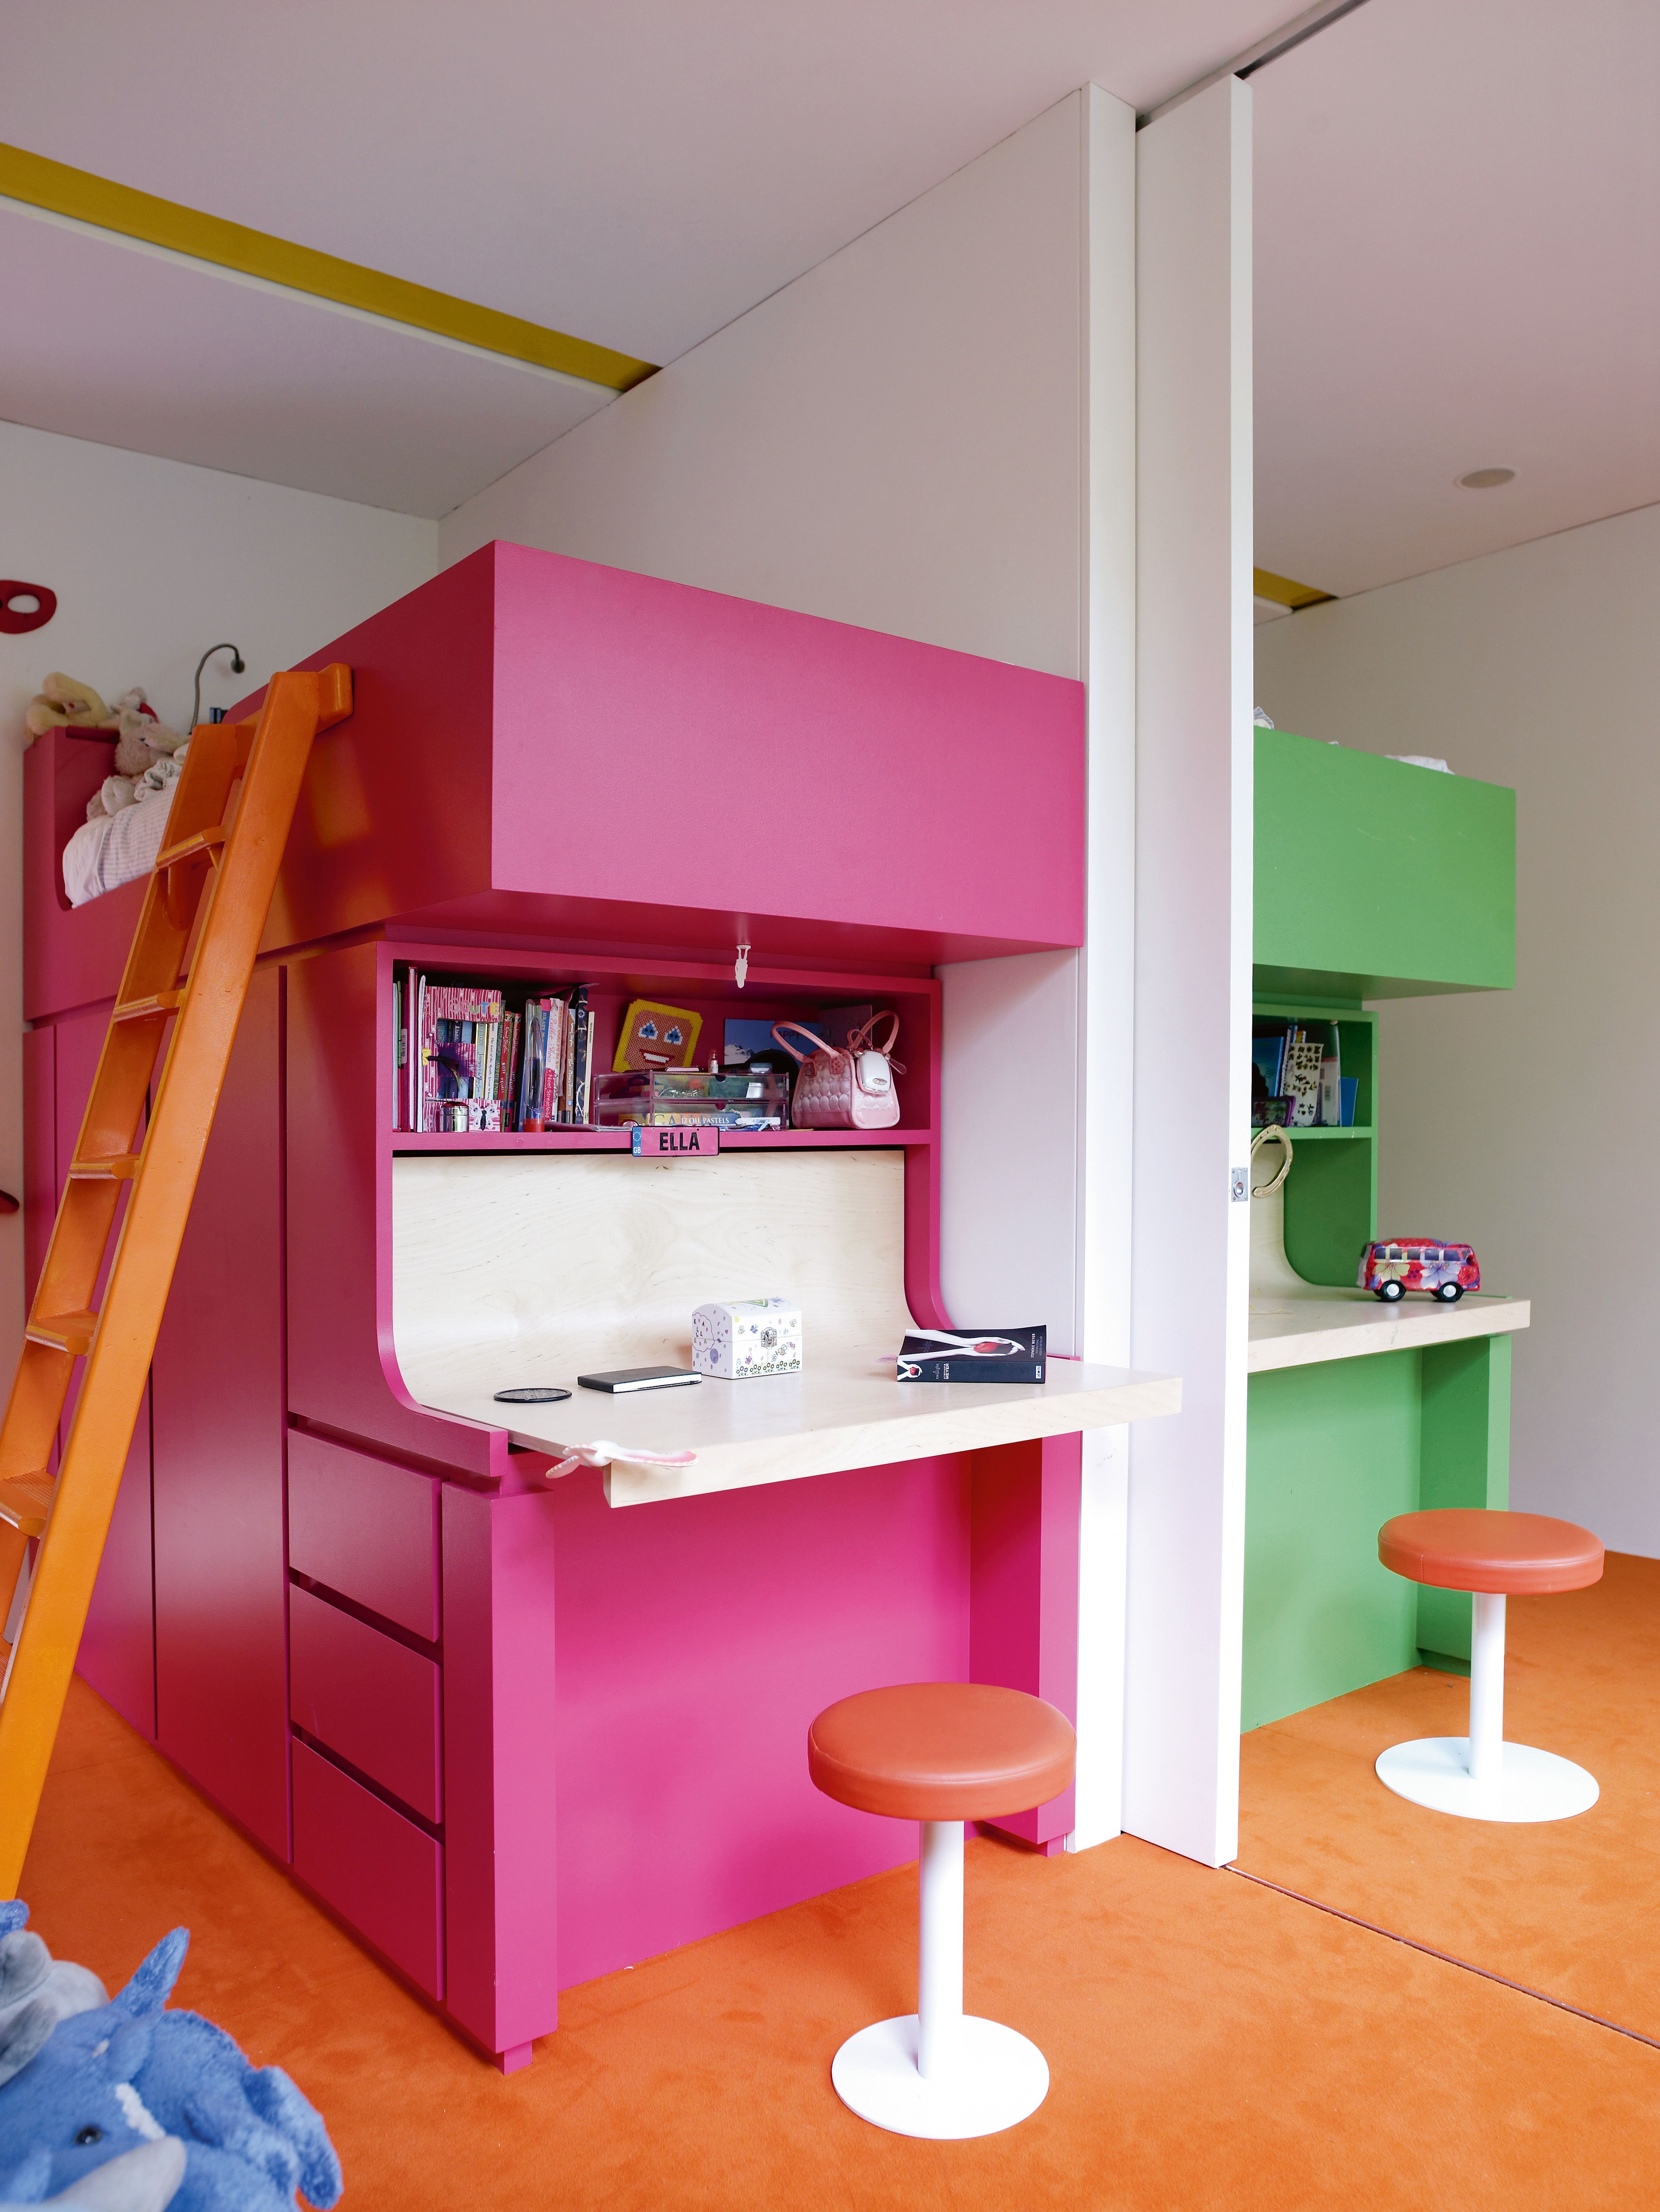 Bunk Beds Designs For Kids Rooms: Interiors: A Richard Rogers House